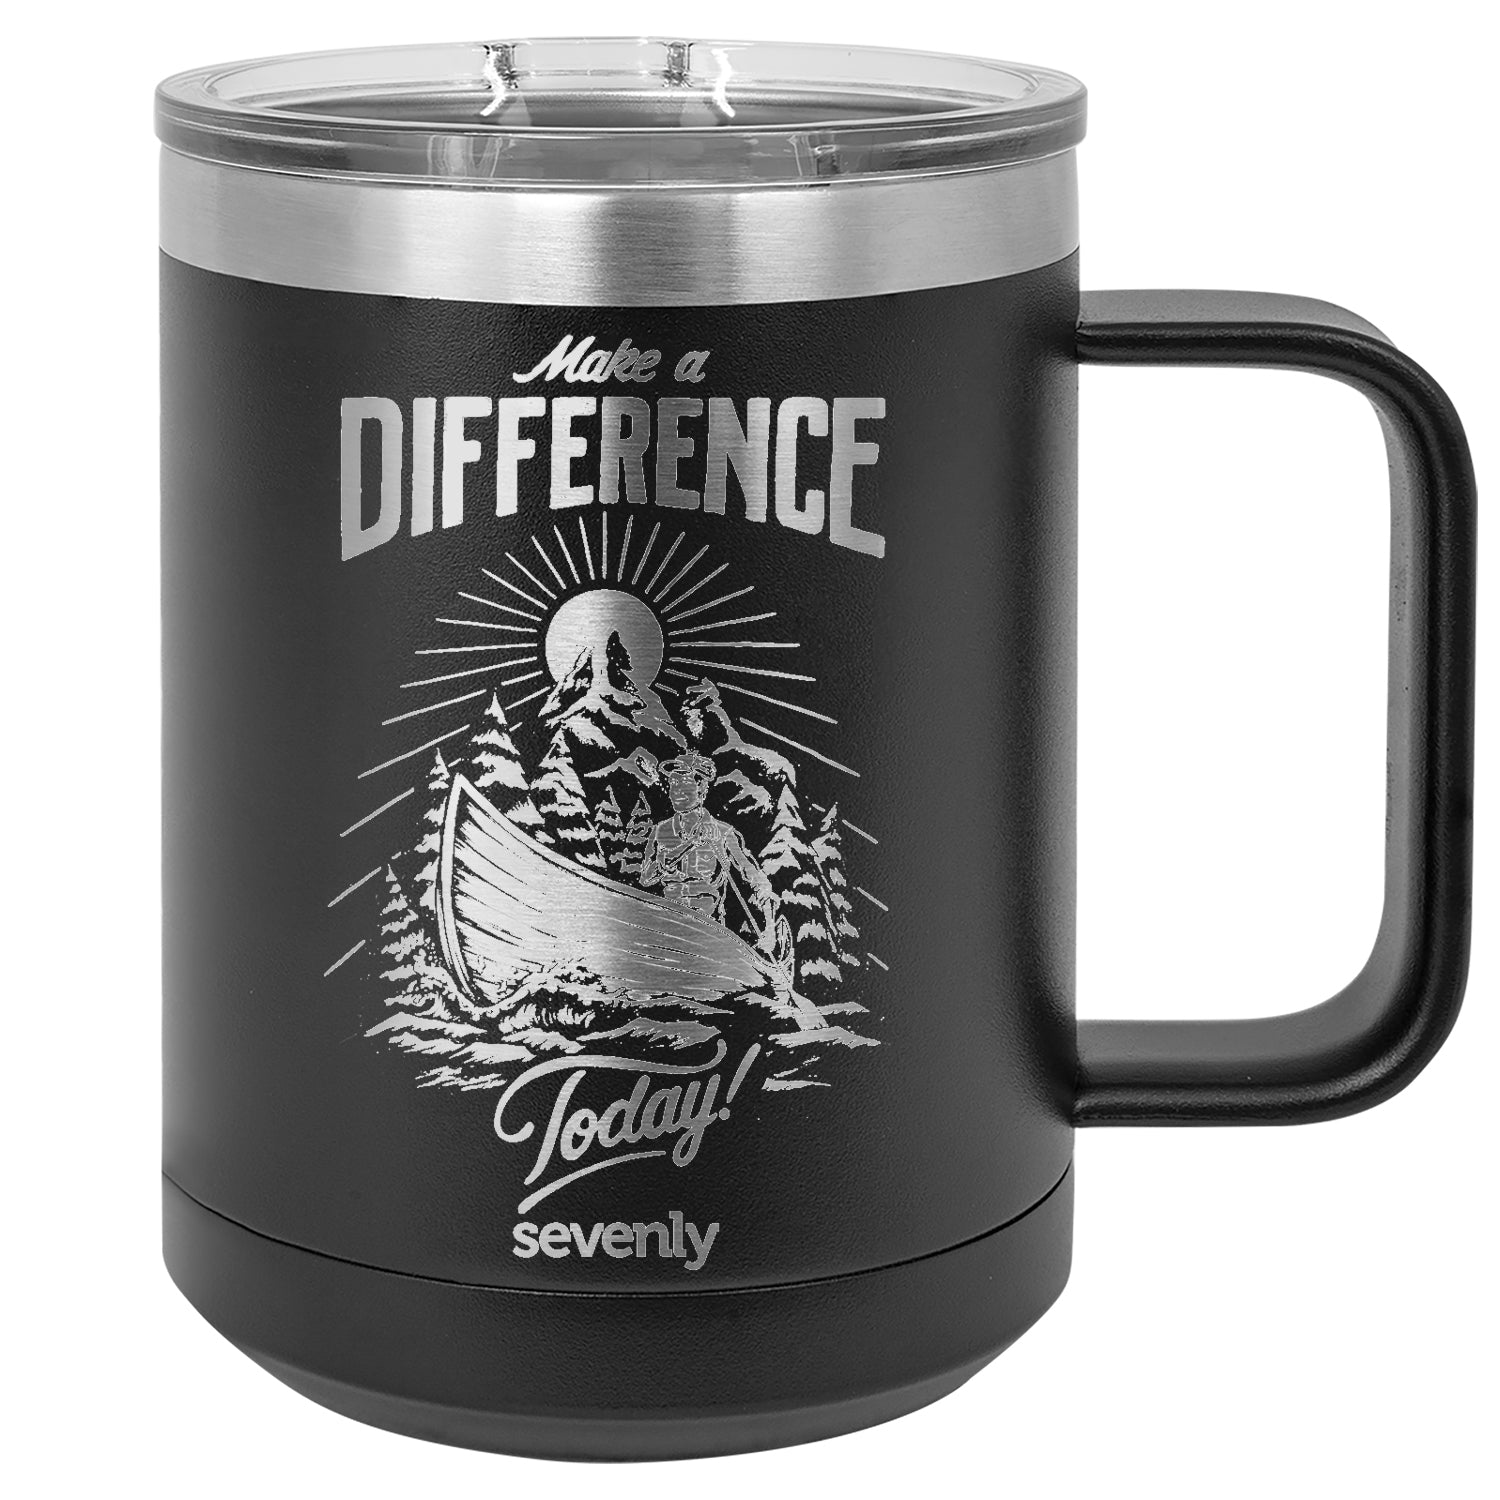 Make A Difference Canoe Insulated Mug Drinkware